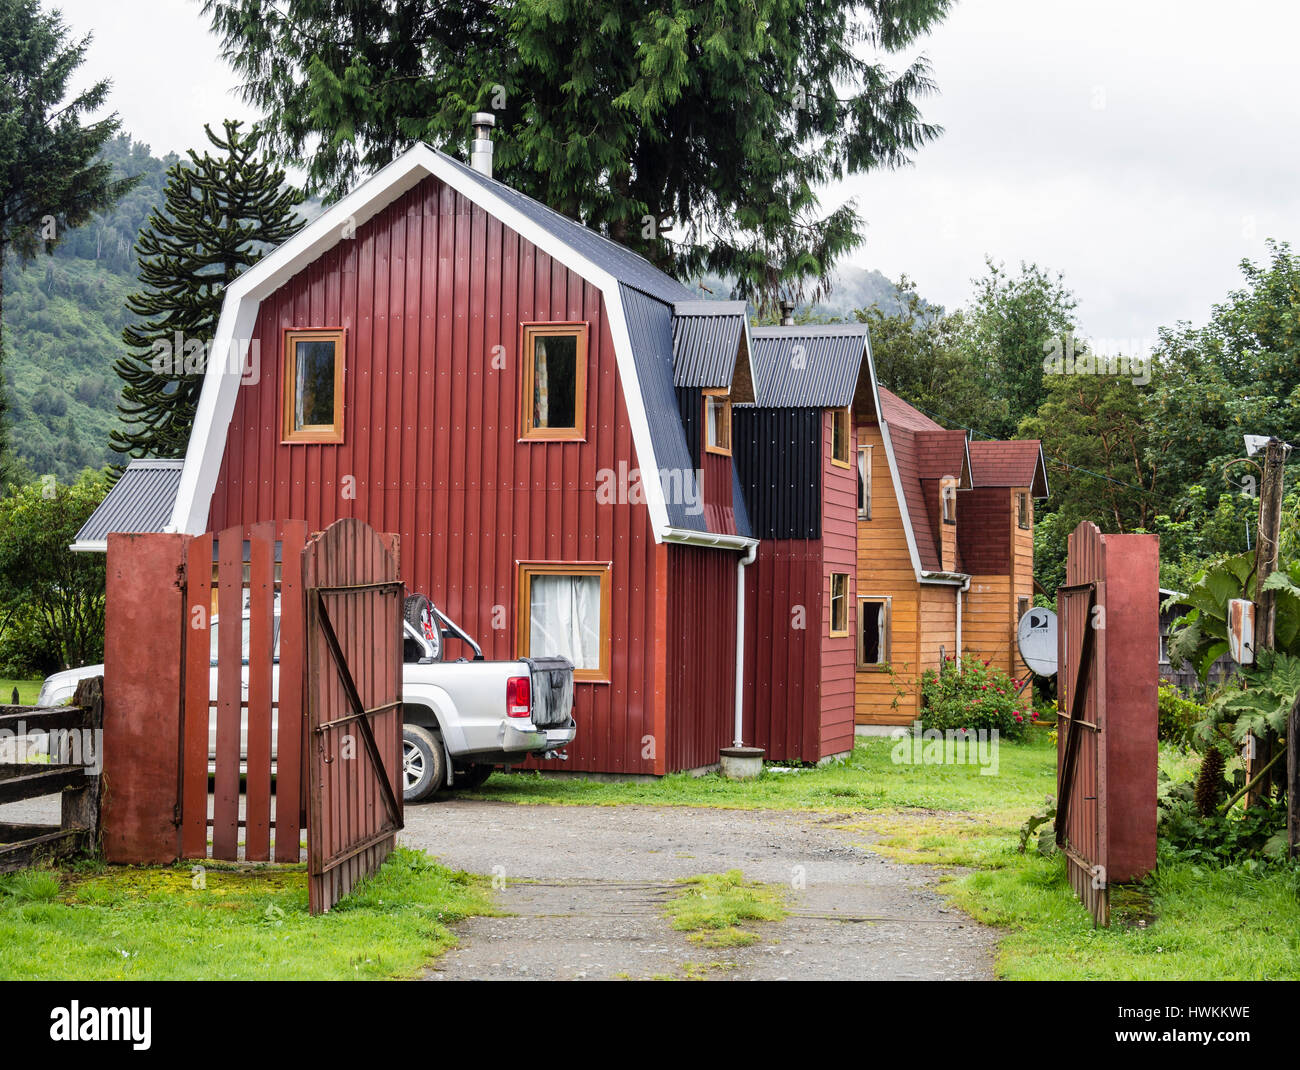 Traditional wooden houses, Puyuhuapi, at road Carretera Austral,  Patagonia, Chile - Stock Image